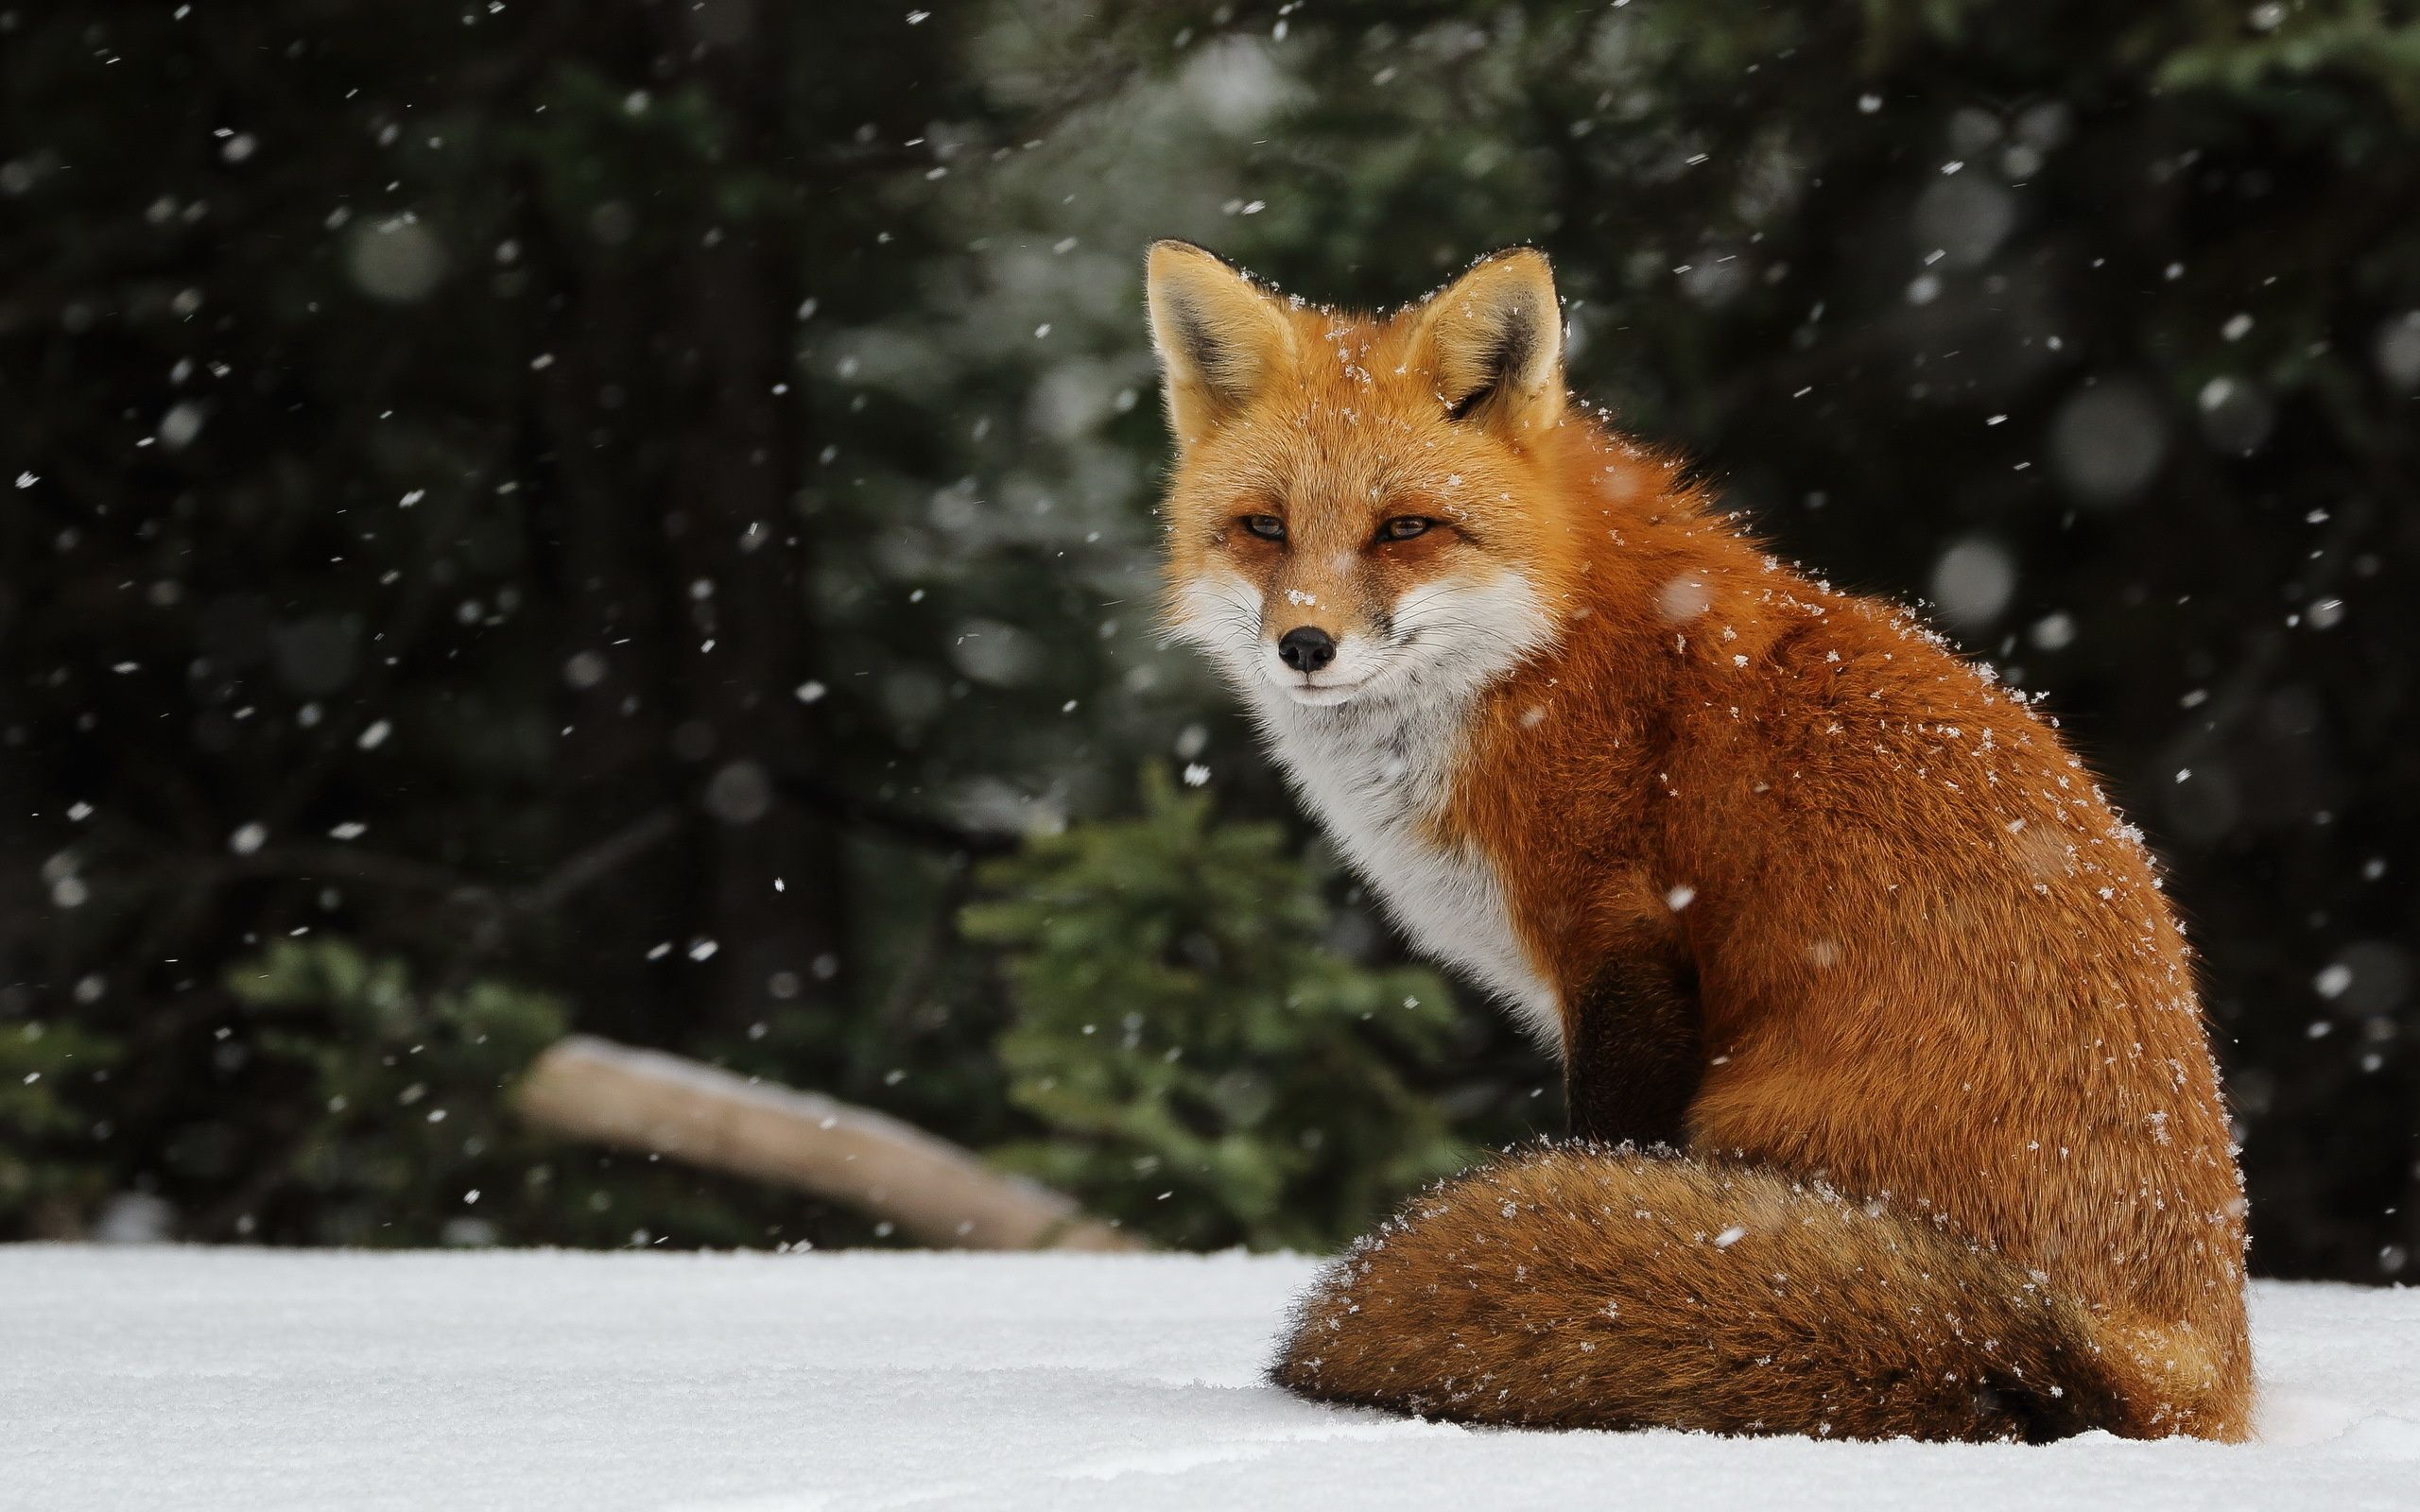 FoxInWInterSnowWallpapersHDimages.jpg (2560×1600